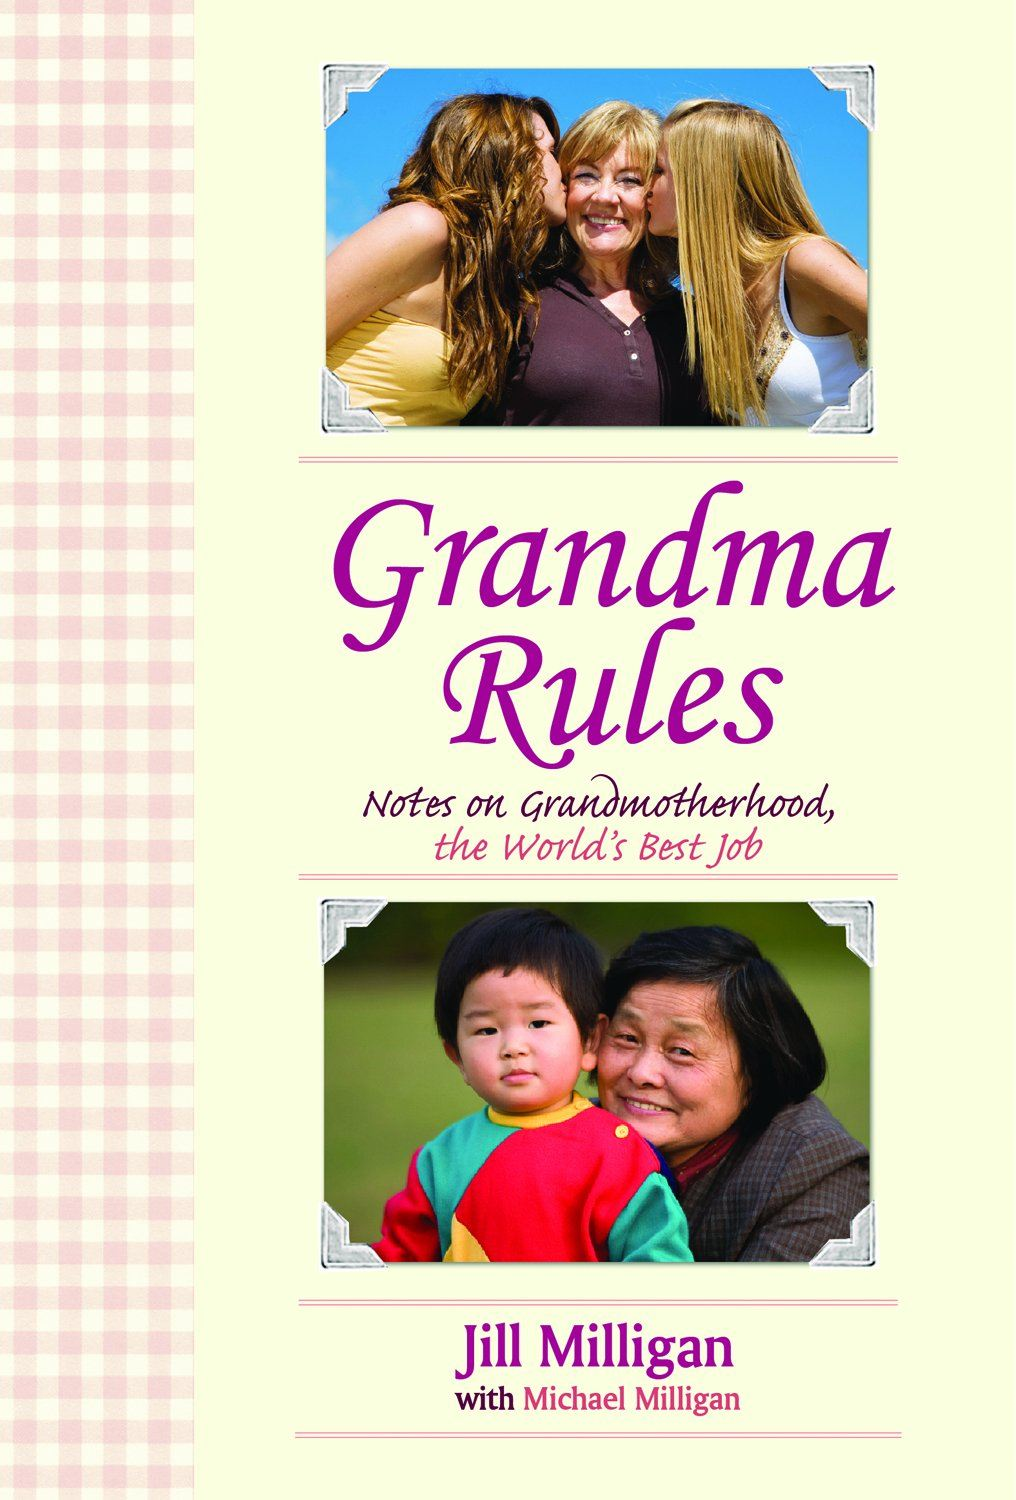 Grandma Rules: Notes on Grandmotherhood, the World's Best Job